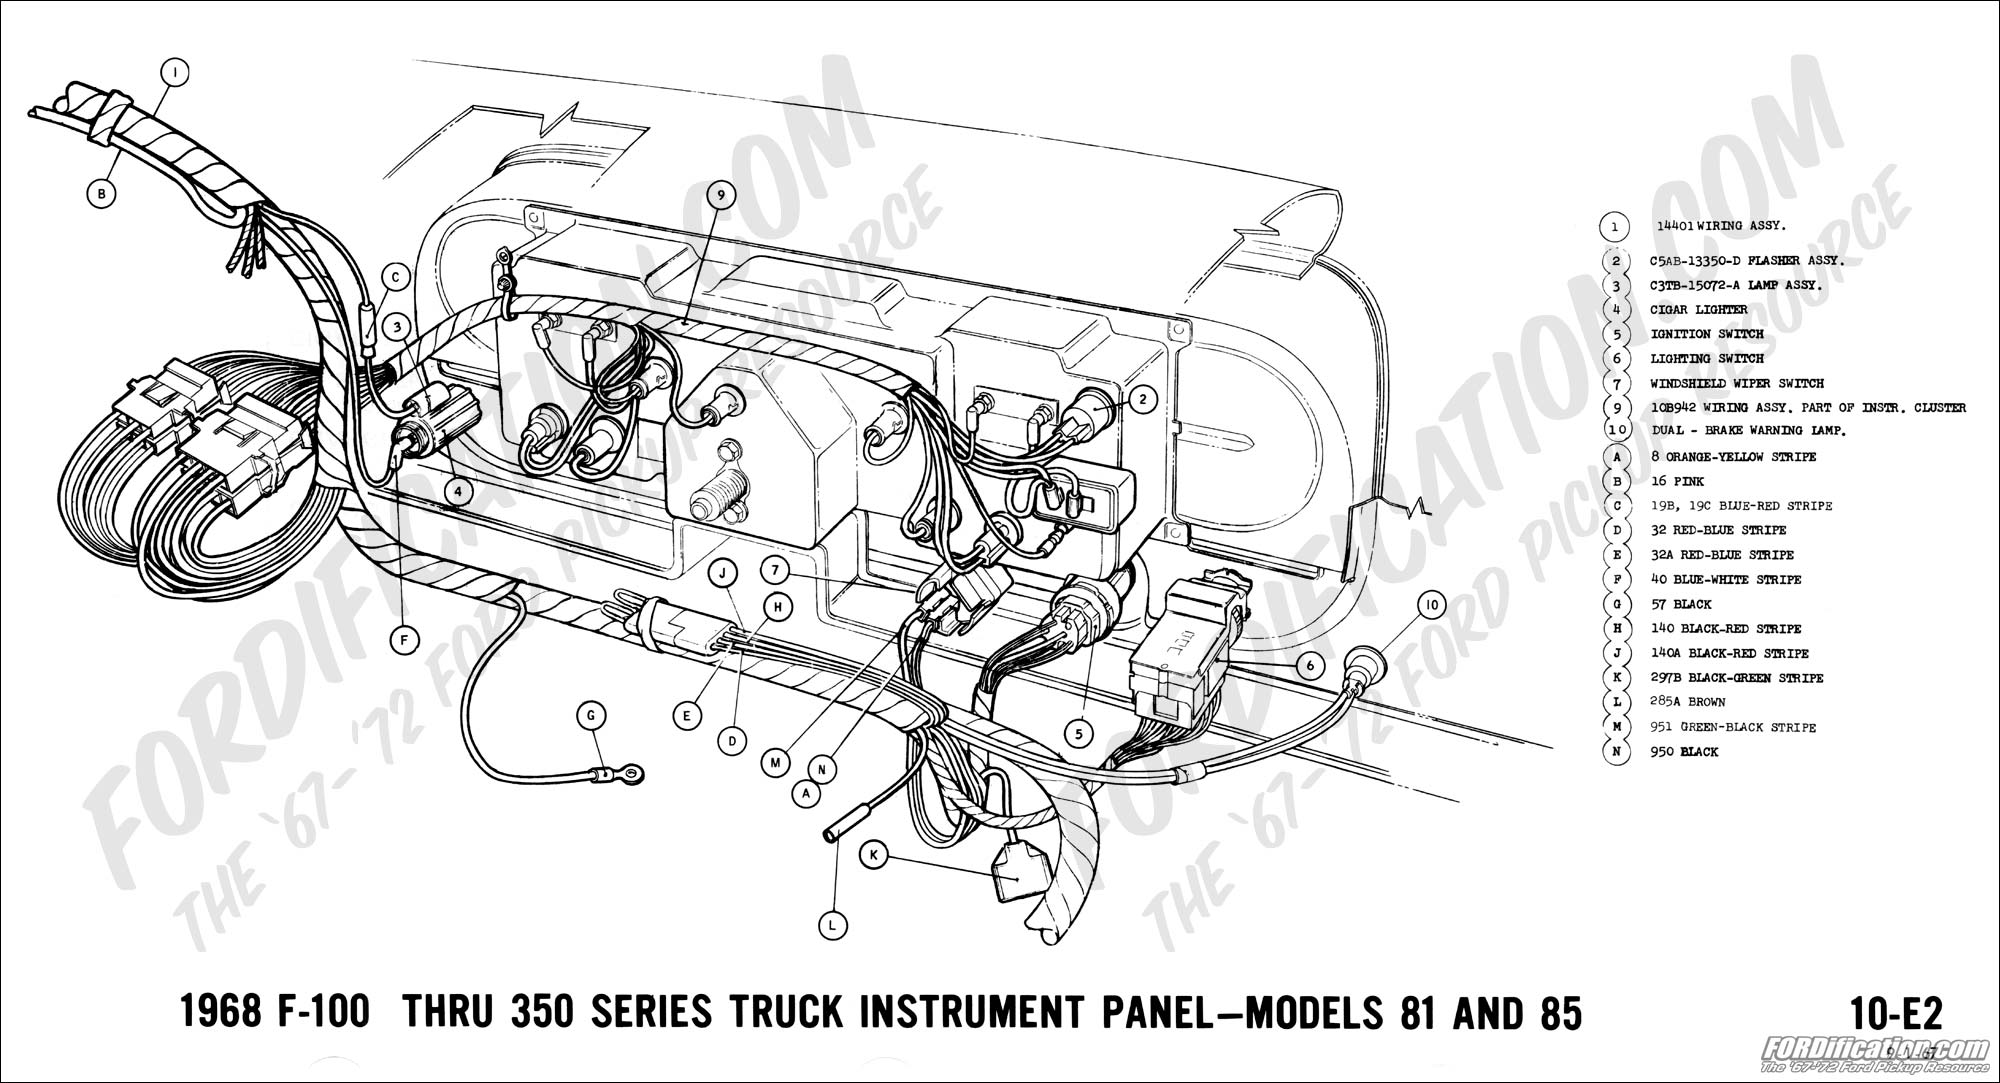 2005 Ford F750 Wiring Diagrams Learn Diagram Effectively Snowdogg Harness Lights Ex85 1968 House Symbols U2022 Rh Maxturner Co